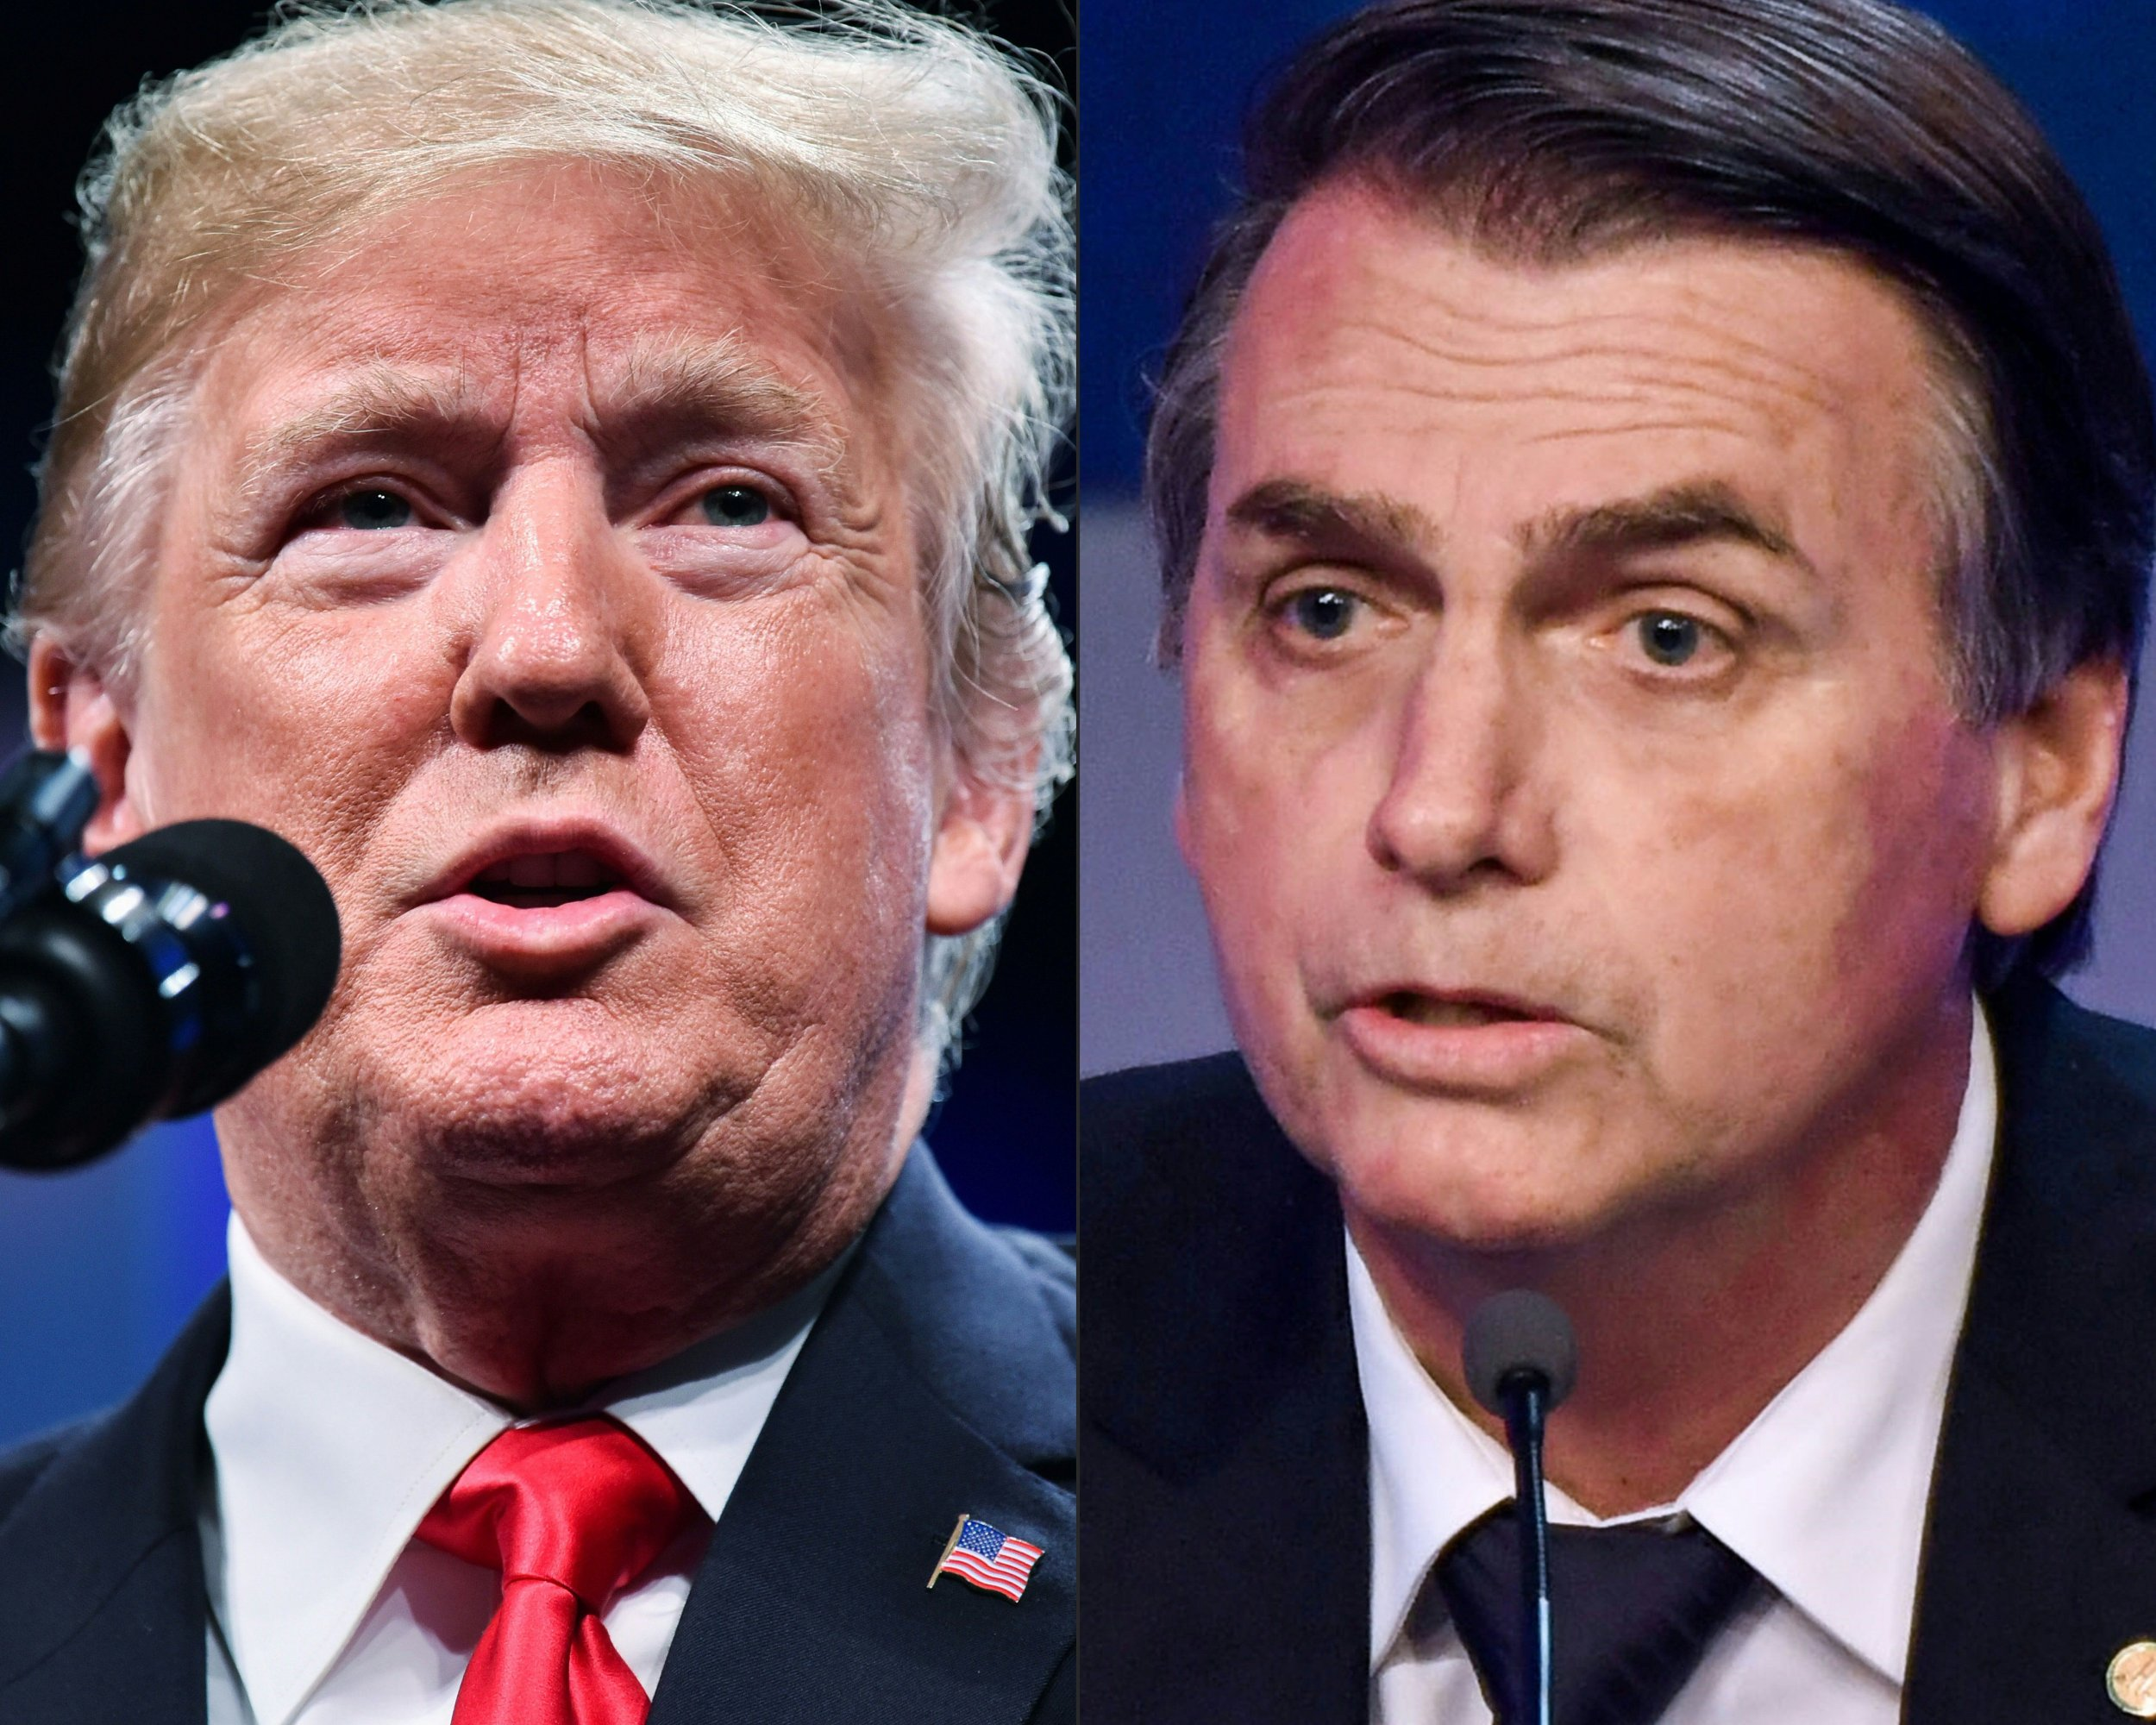 donald, trump, jair bolsonaro, brazil, meeting,